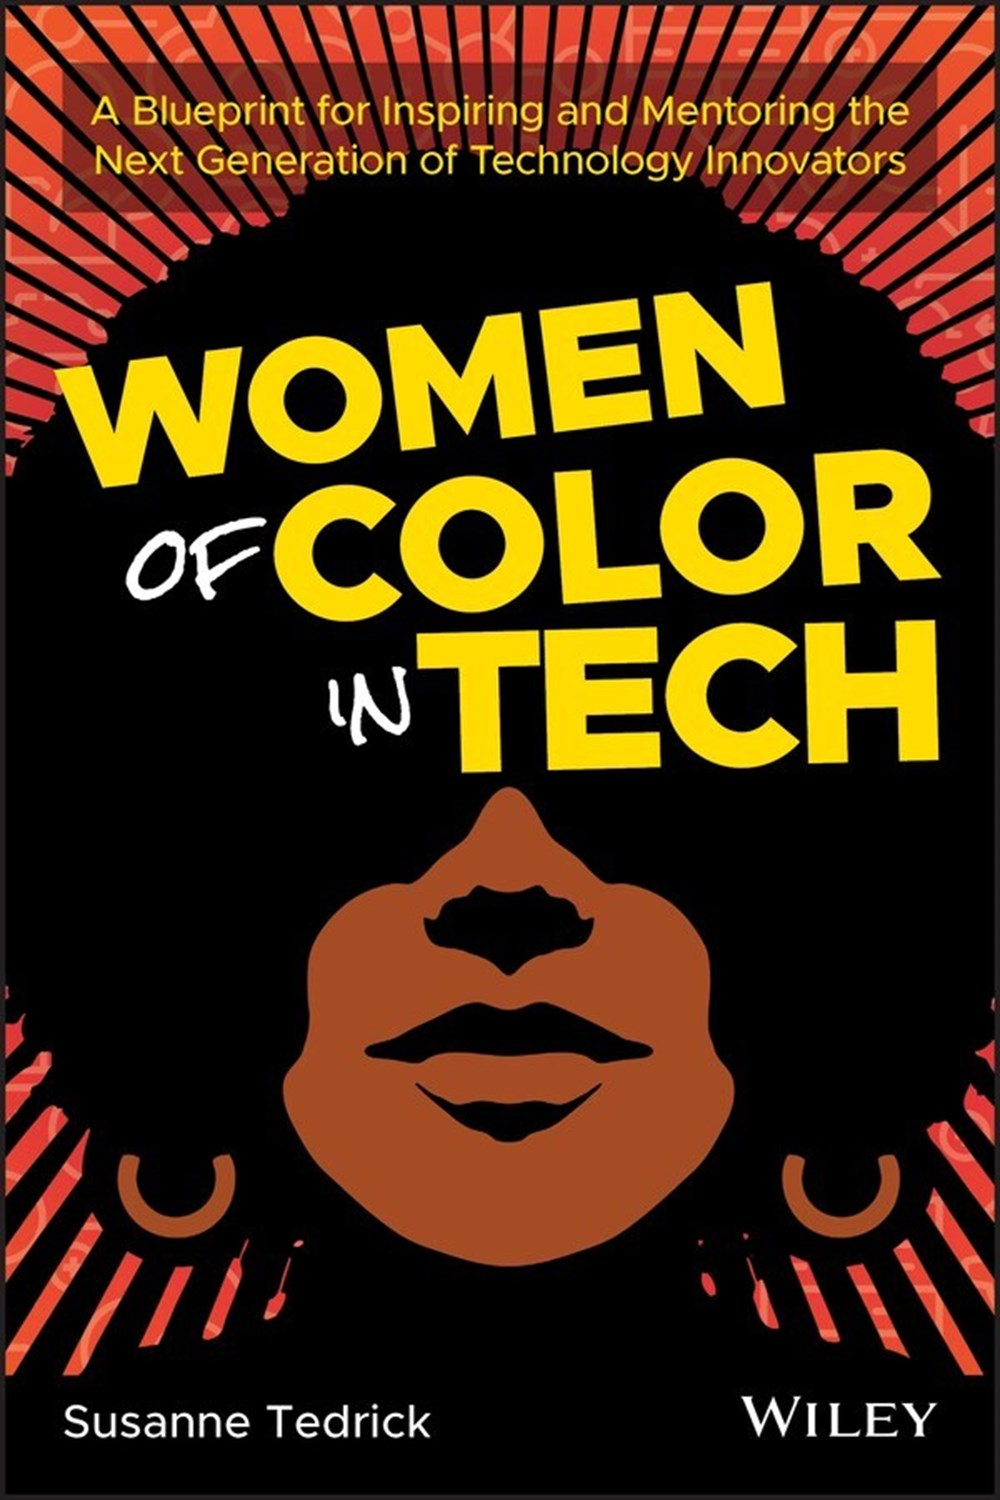 Women of Color in Tech A Blueprint for Inspiring and Mentoring the Next Generation of Technology Inn